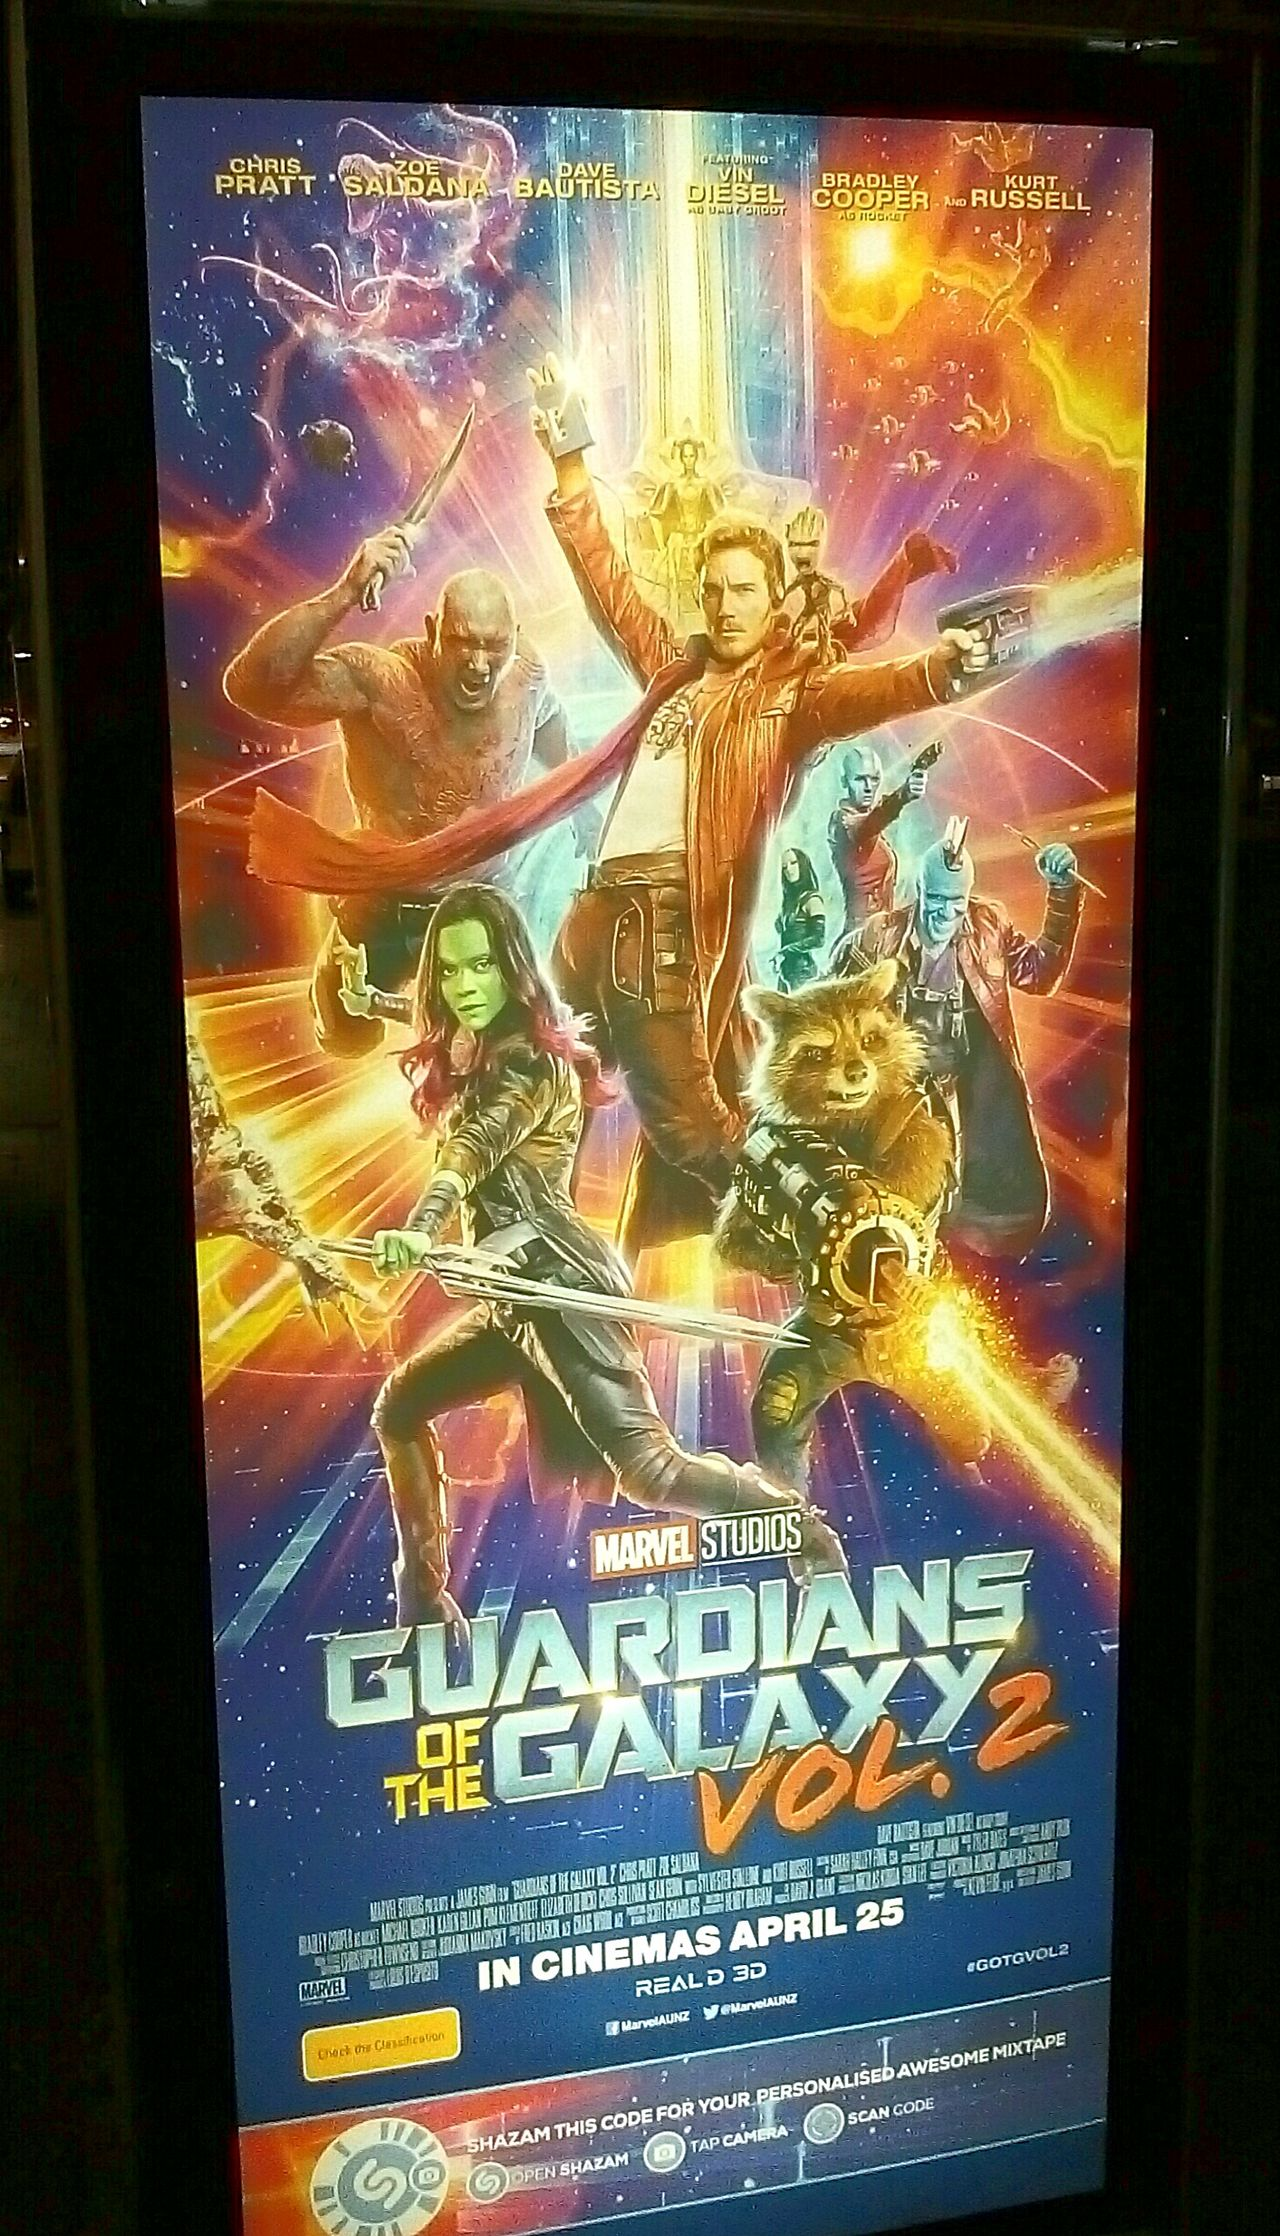 GUARDIANSOFTHEGALAXY Movieposters Guardians Of The Galaxy Poster Illuminated Signs Signs Signage Sign Signs_collection Signstalkers Posters SignHunters Movie Posters MOVIE Illuminatedsigns Movies Movieposter Movie Poster Poster Collection Signs & More Signs Signs, Signs, & More Signs SignSignEverywhereASign Volume2 Vol.2 Vol2